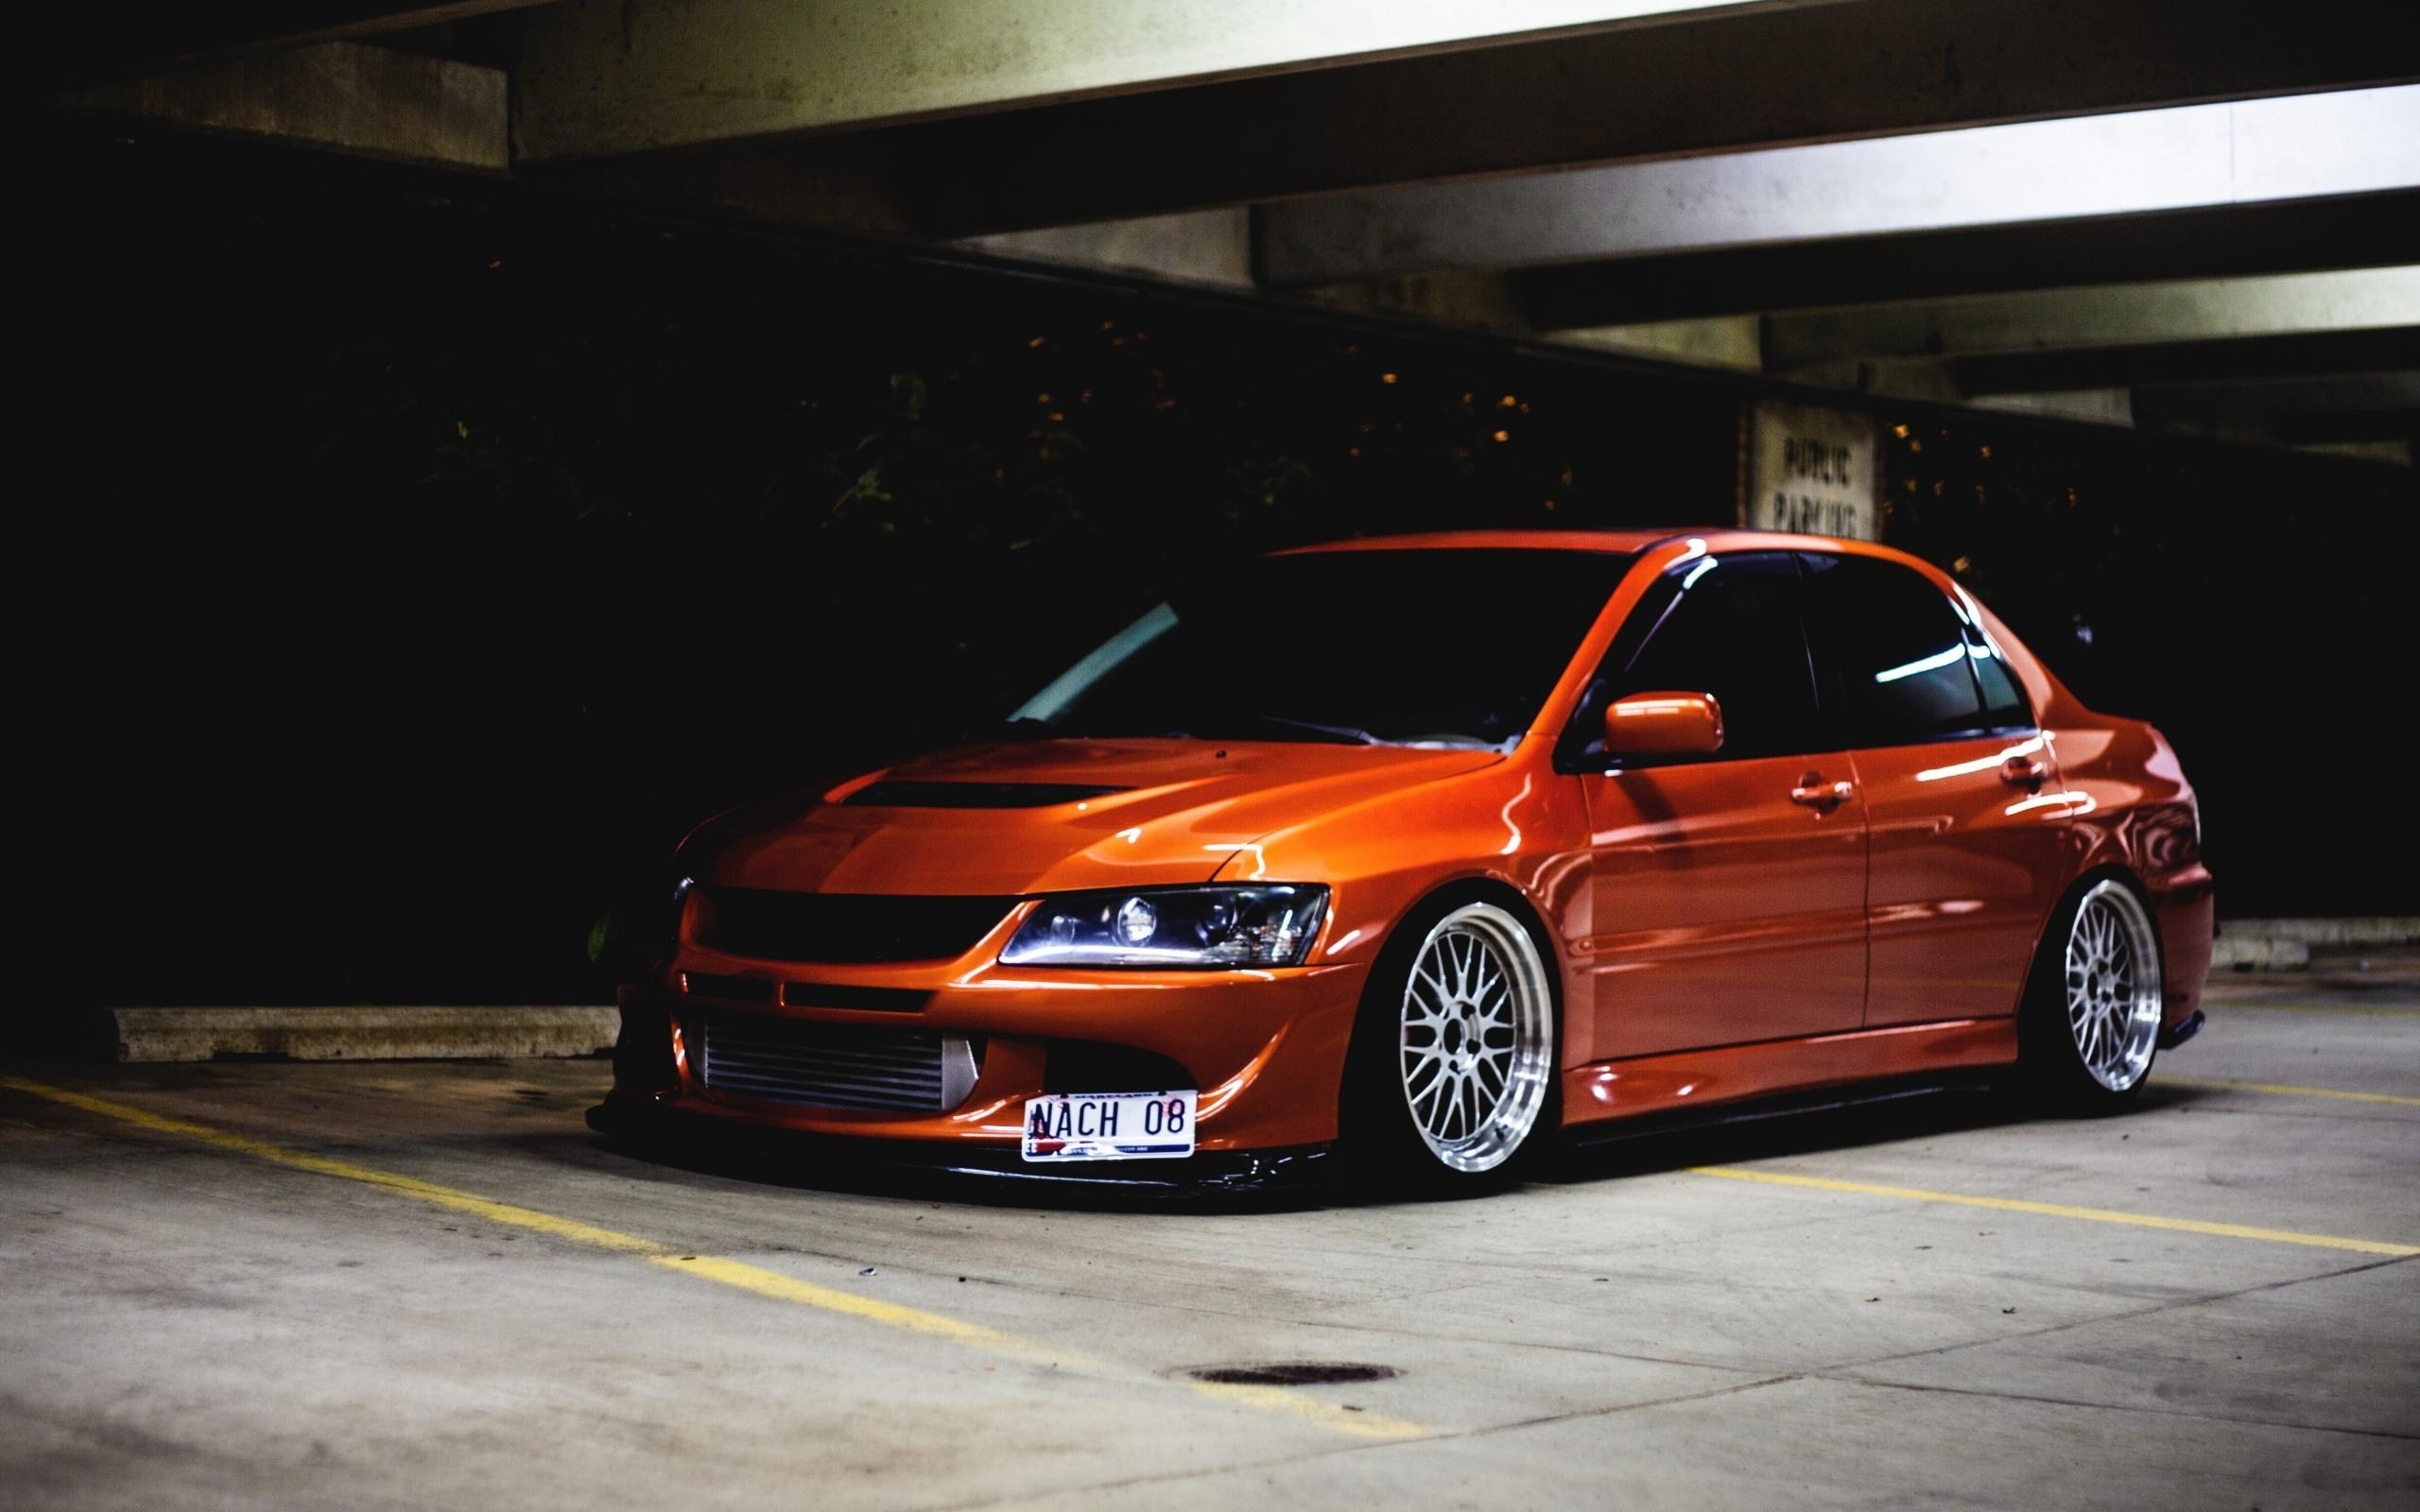 Best 39 Evo 9 Background on HipWallpaper HTC EVO Wallpaper Evo 2560x1600